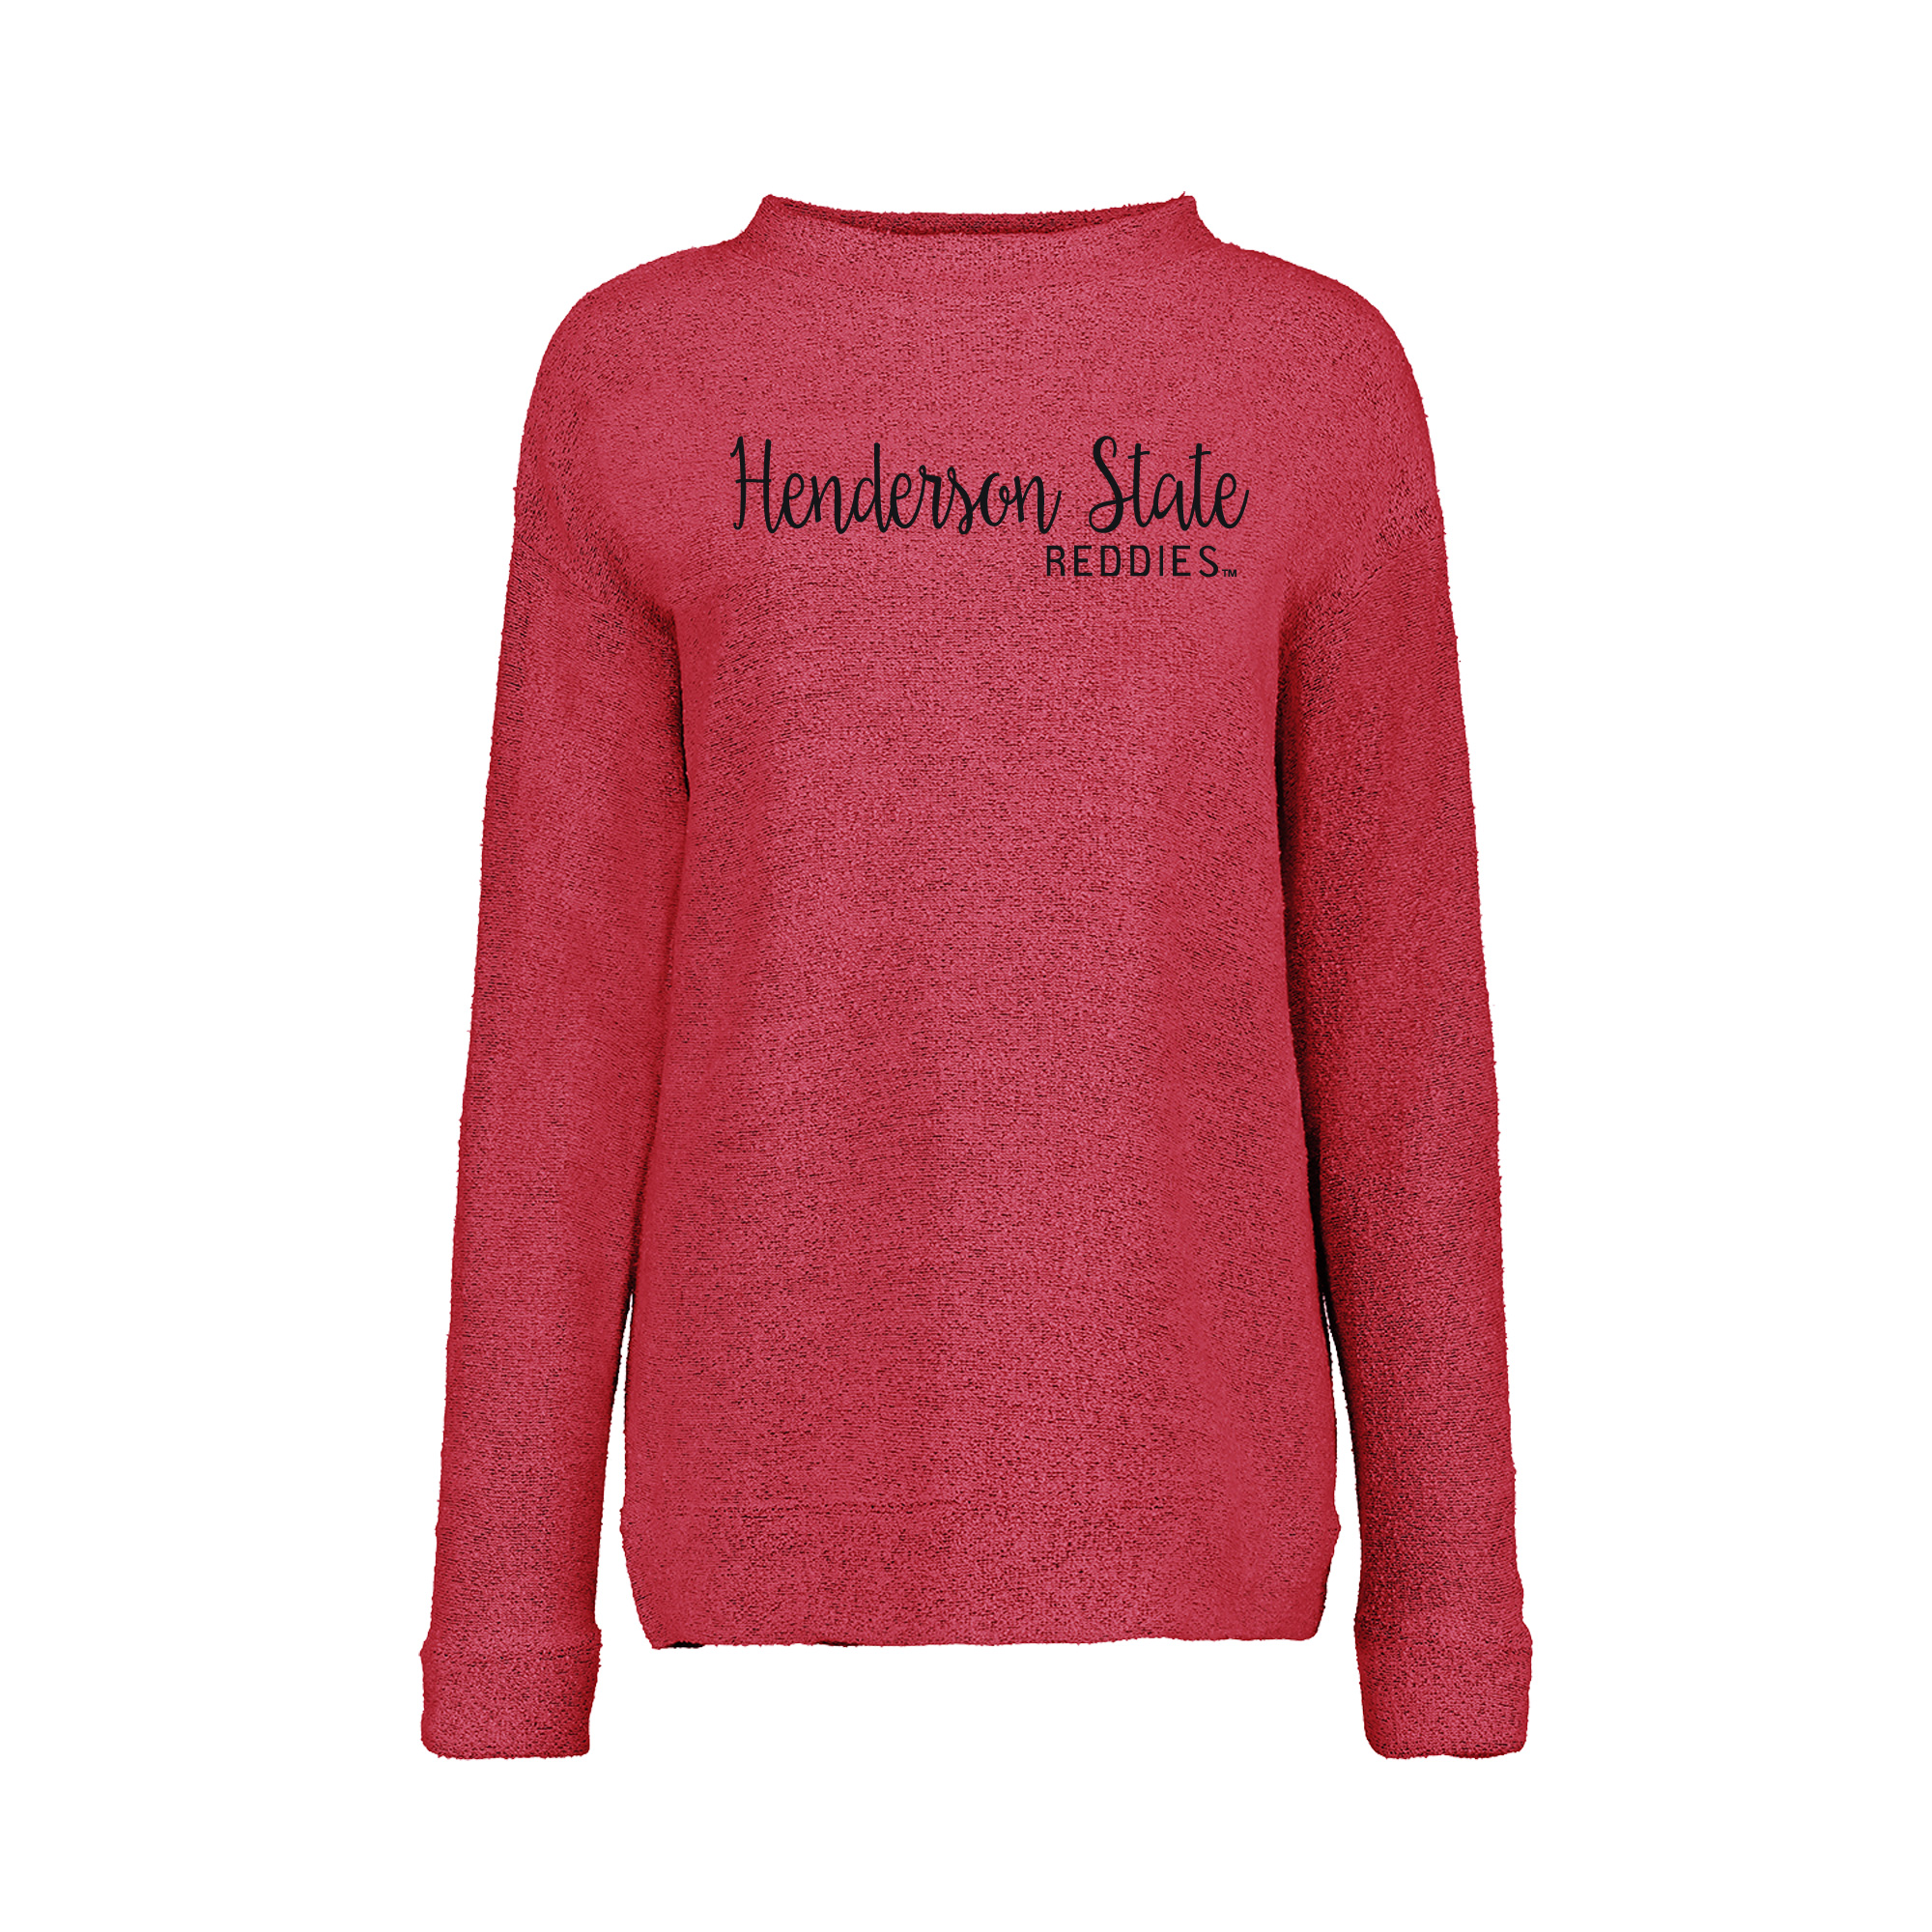 Henderson State Reddies Lyla Loop Fleece